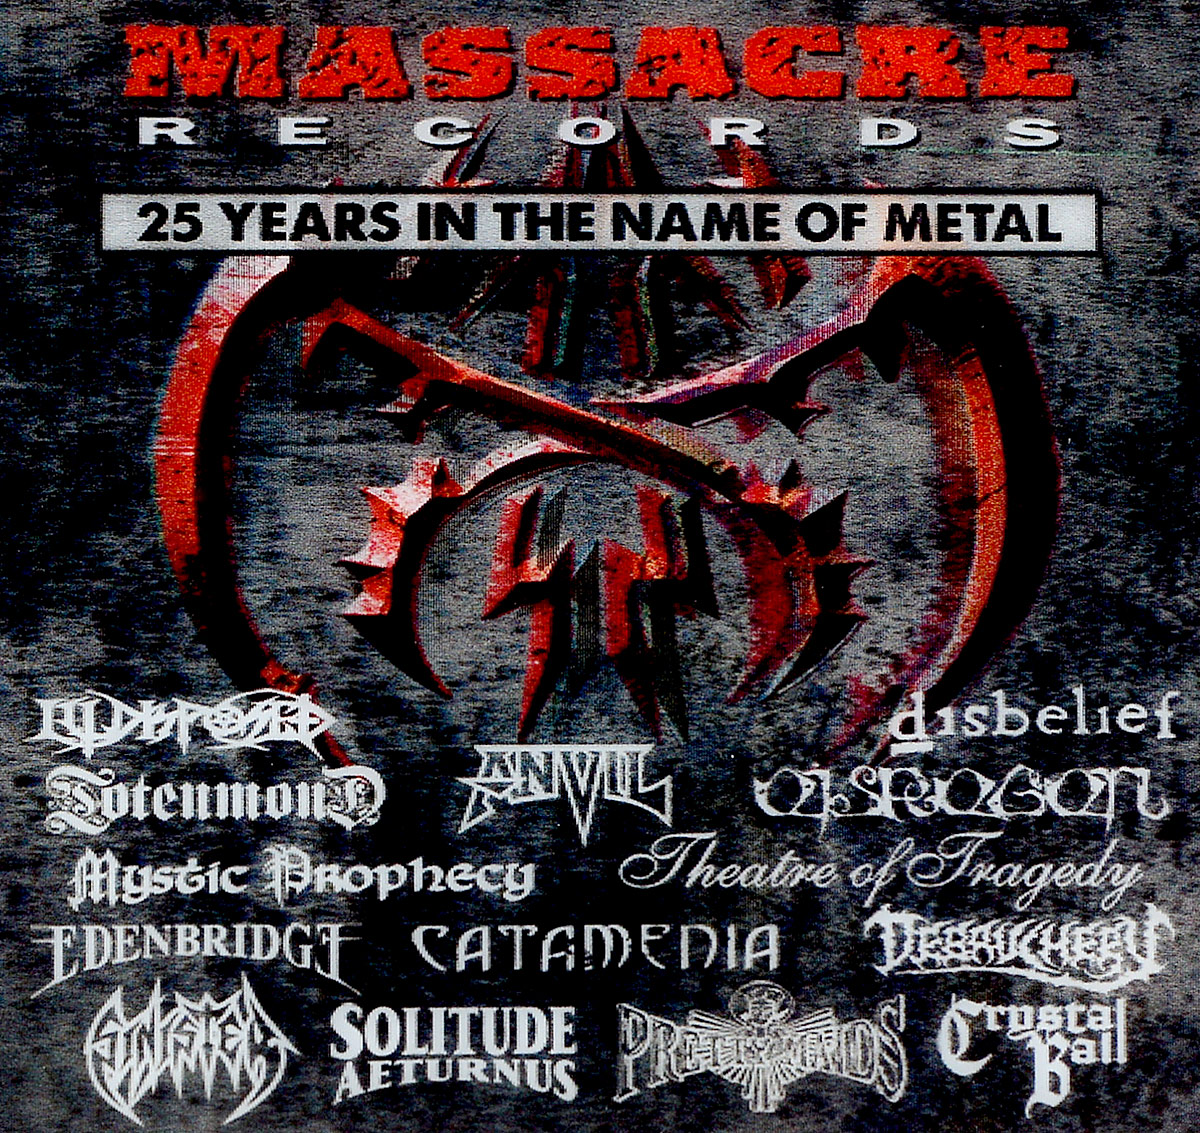 Theatre of Tragedy,Crematory,Catamenia,Sinister,Debauchery,Edenbridge,Disbelief,Legion Of The Damned,Mystic Prophecy,Axxis 25 Years In Metal (2 CD) стинг sting the best of 25 years 2 cd